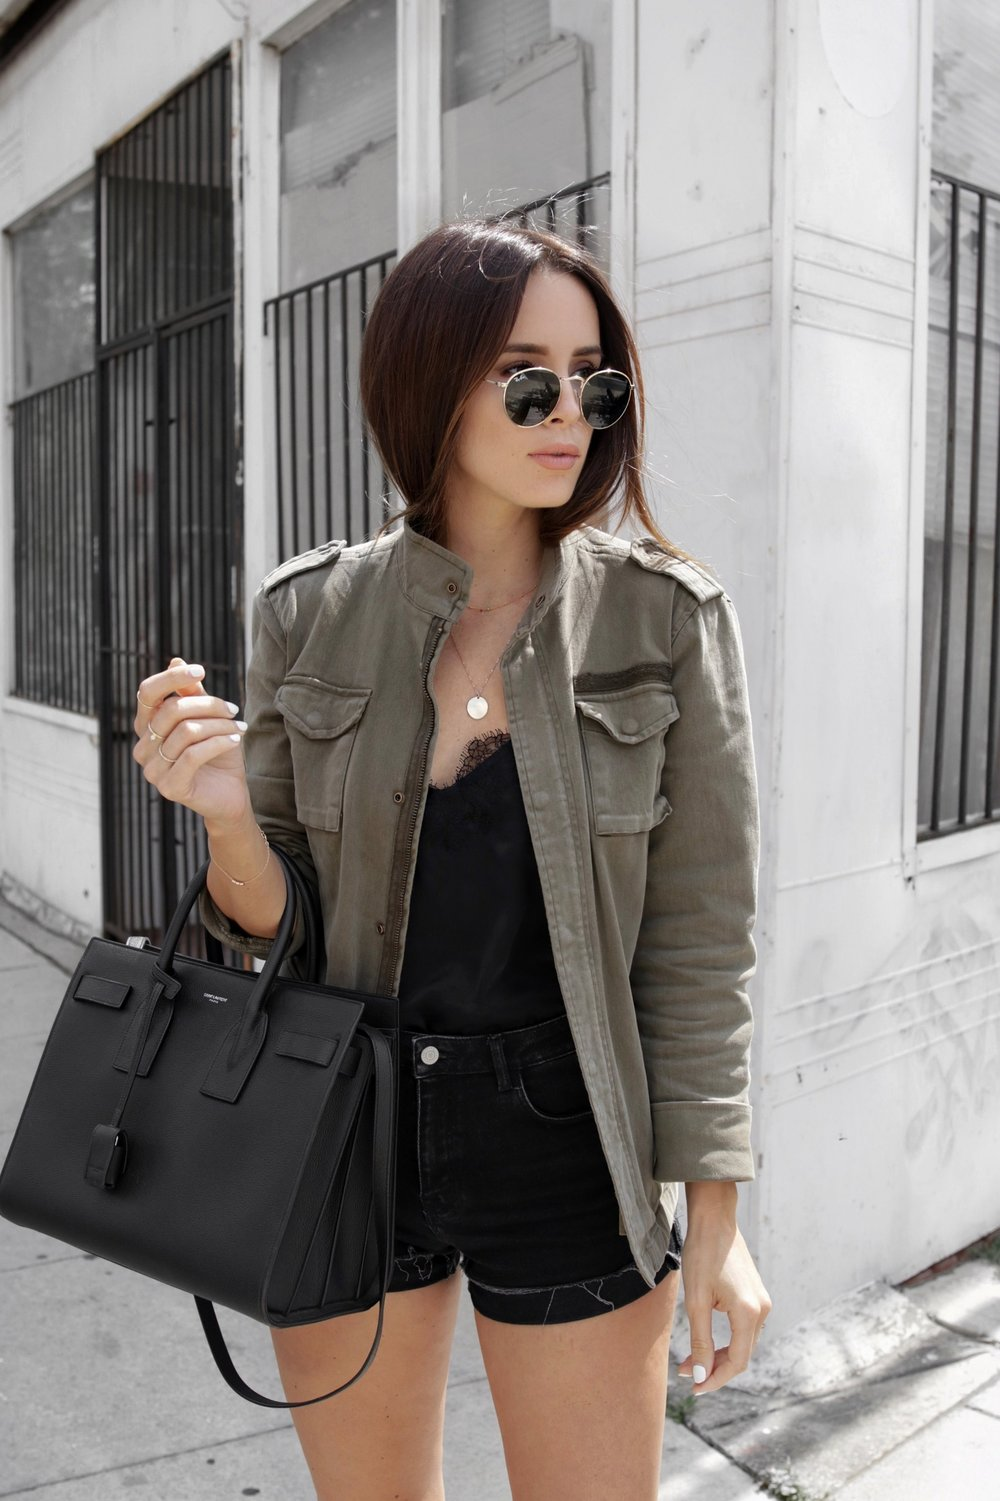 Jodi_Blk_Green_Army_Jacket_Outfit